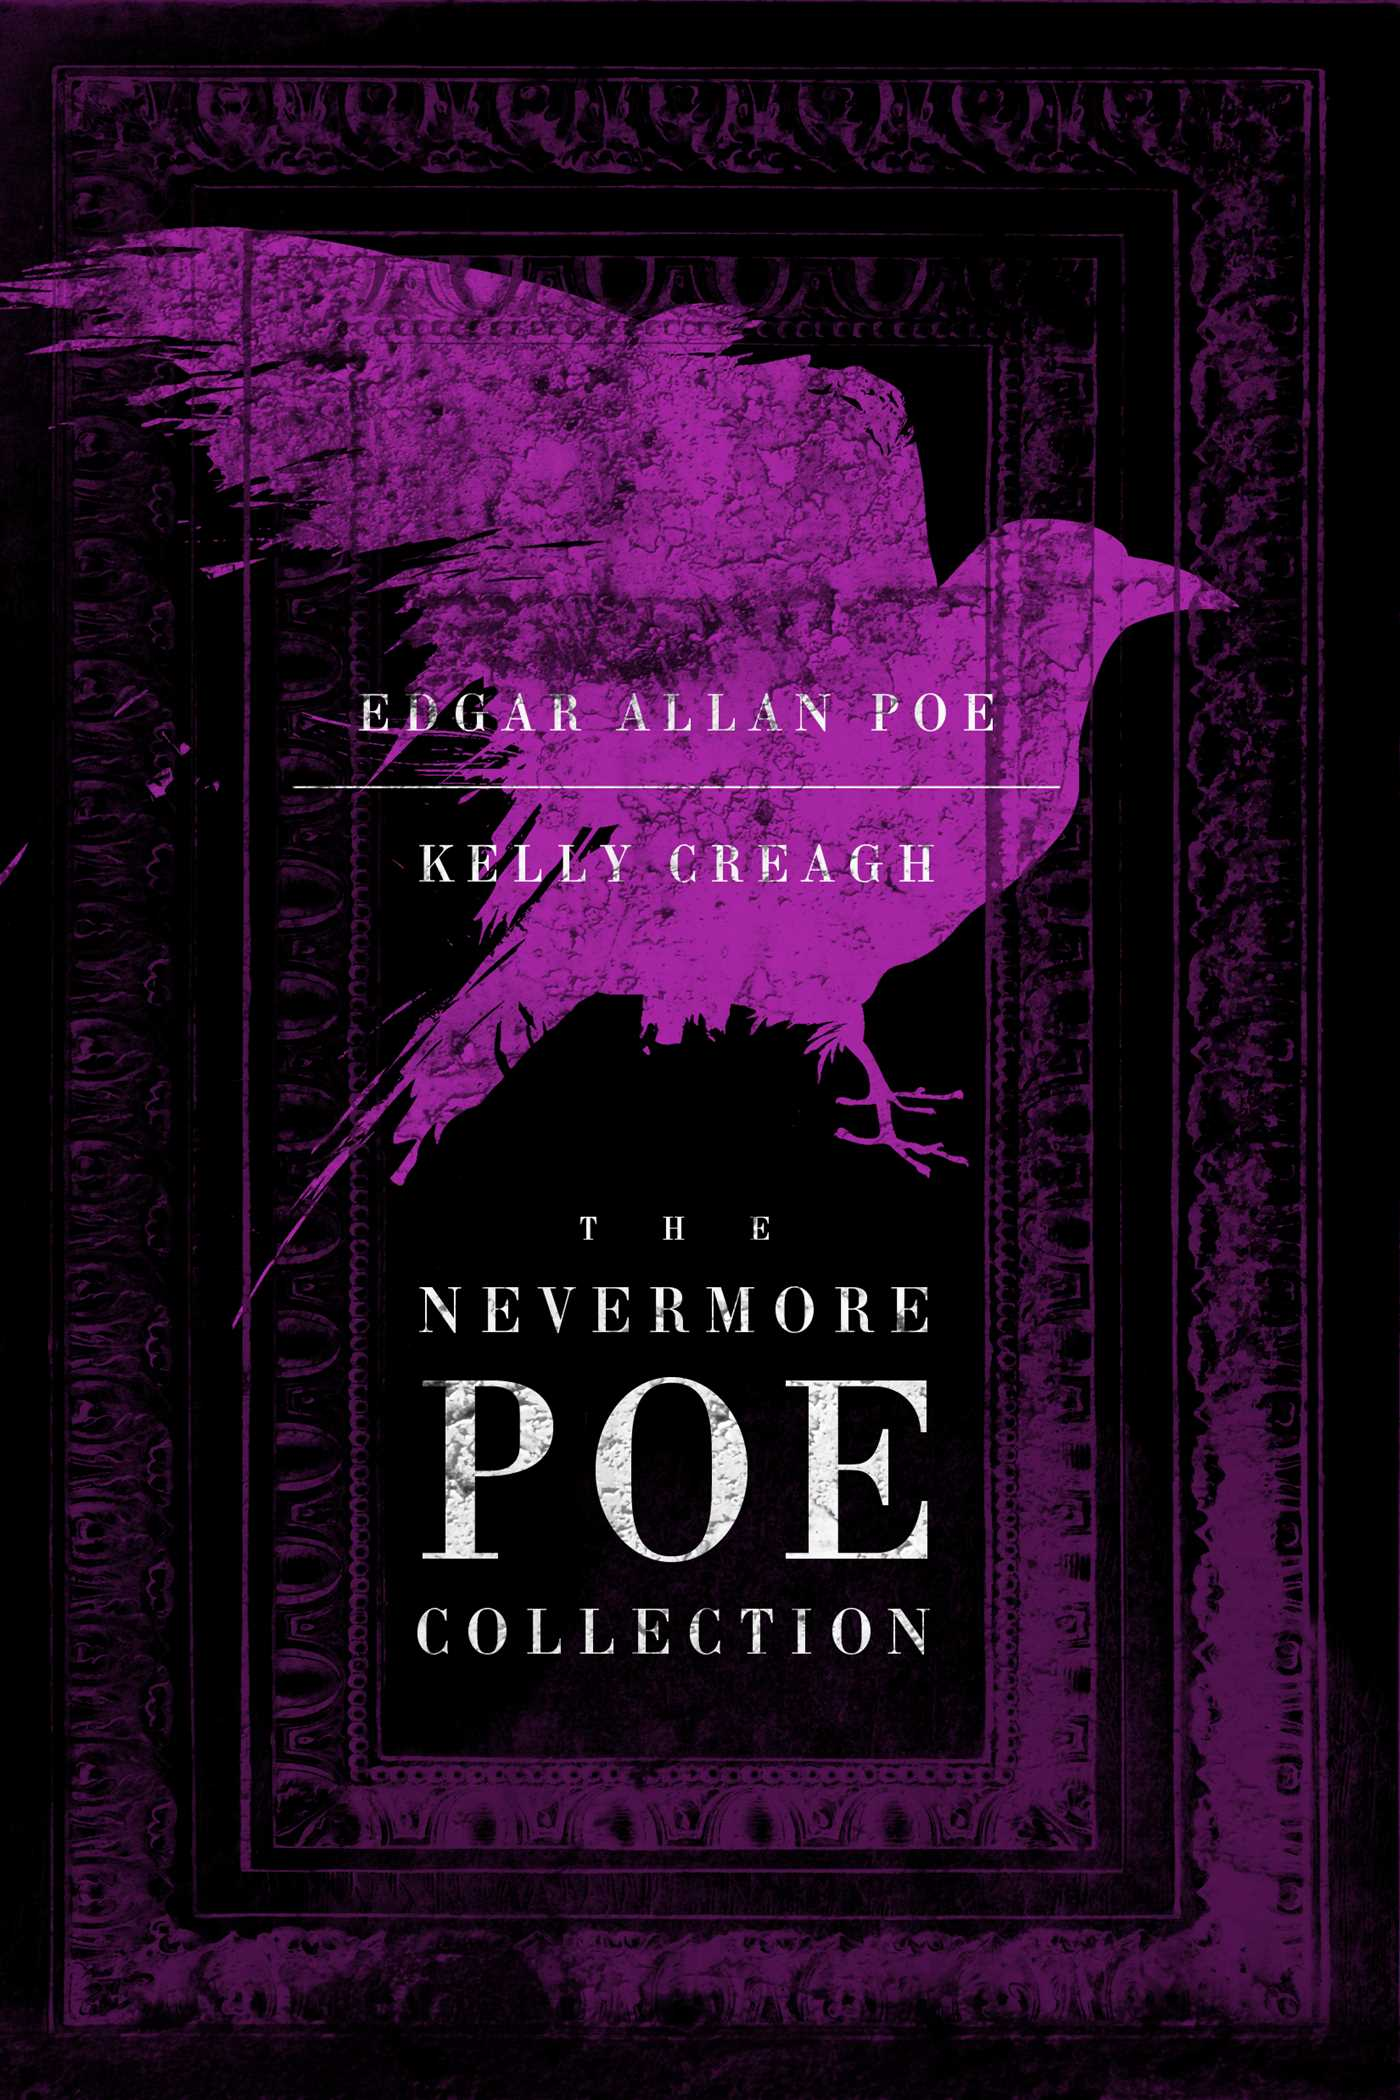 The nevermore poe collection 9781442453319 hr